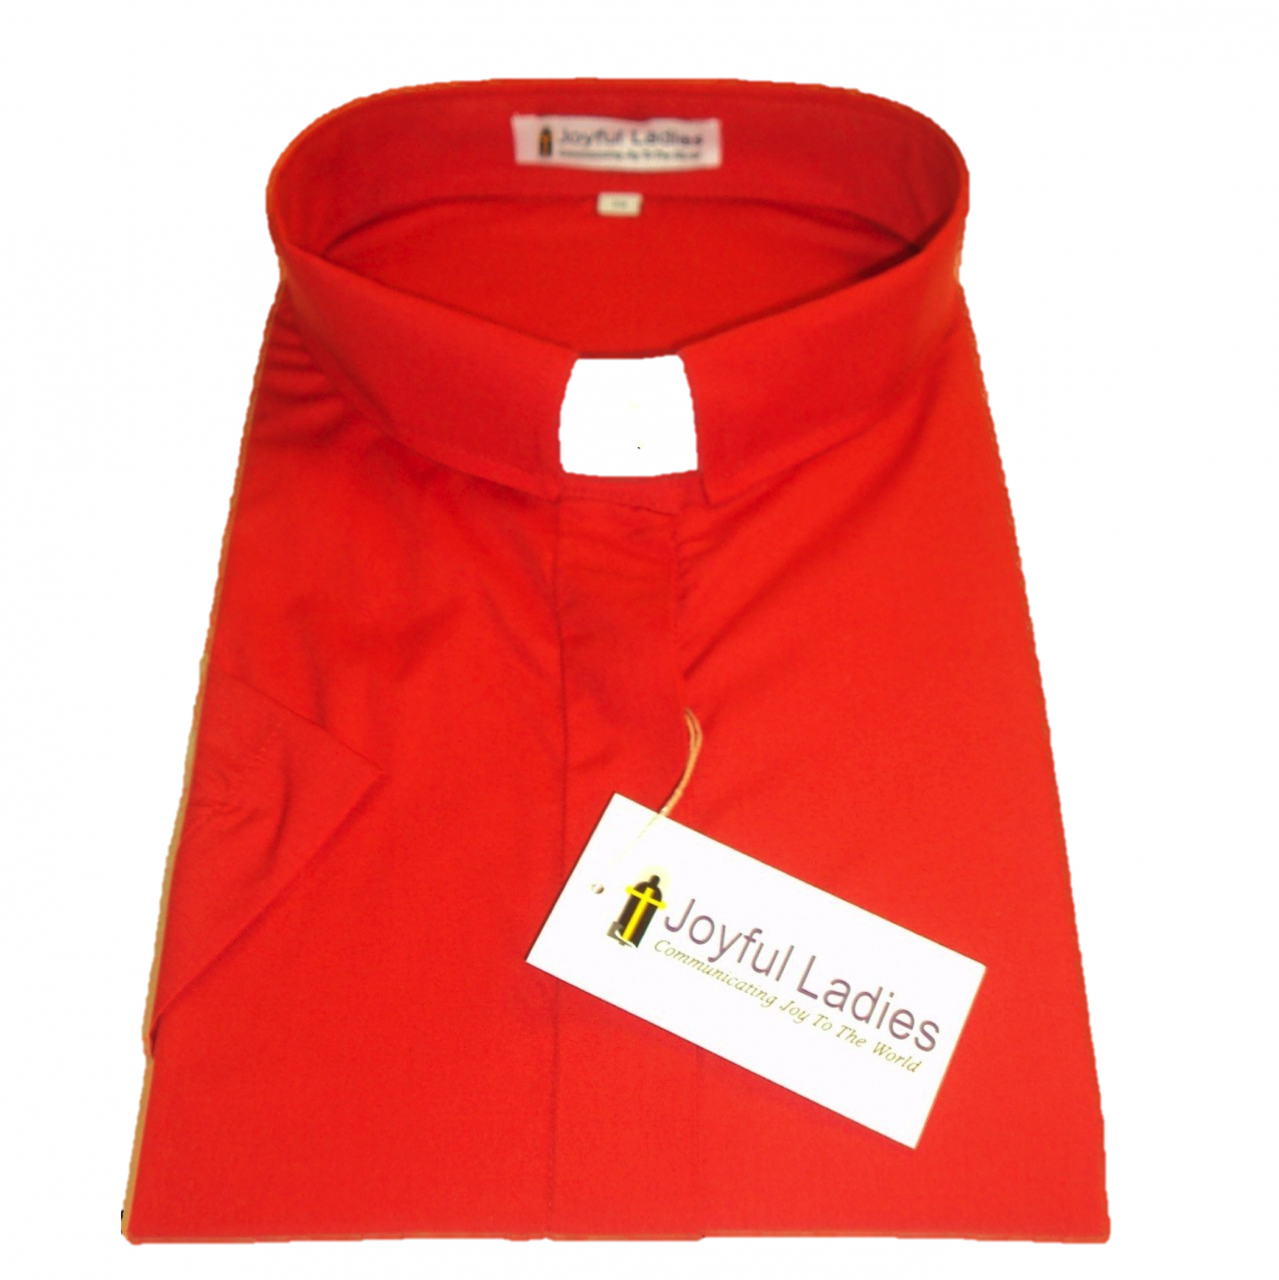 557. Women's Short-Sleeve Tab-Collar Clergy Shirt - Red